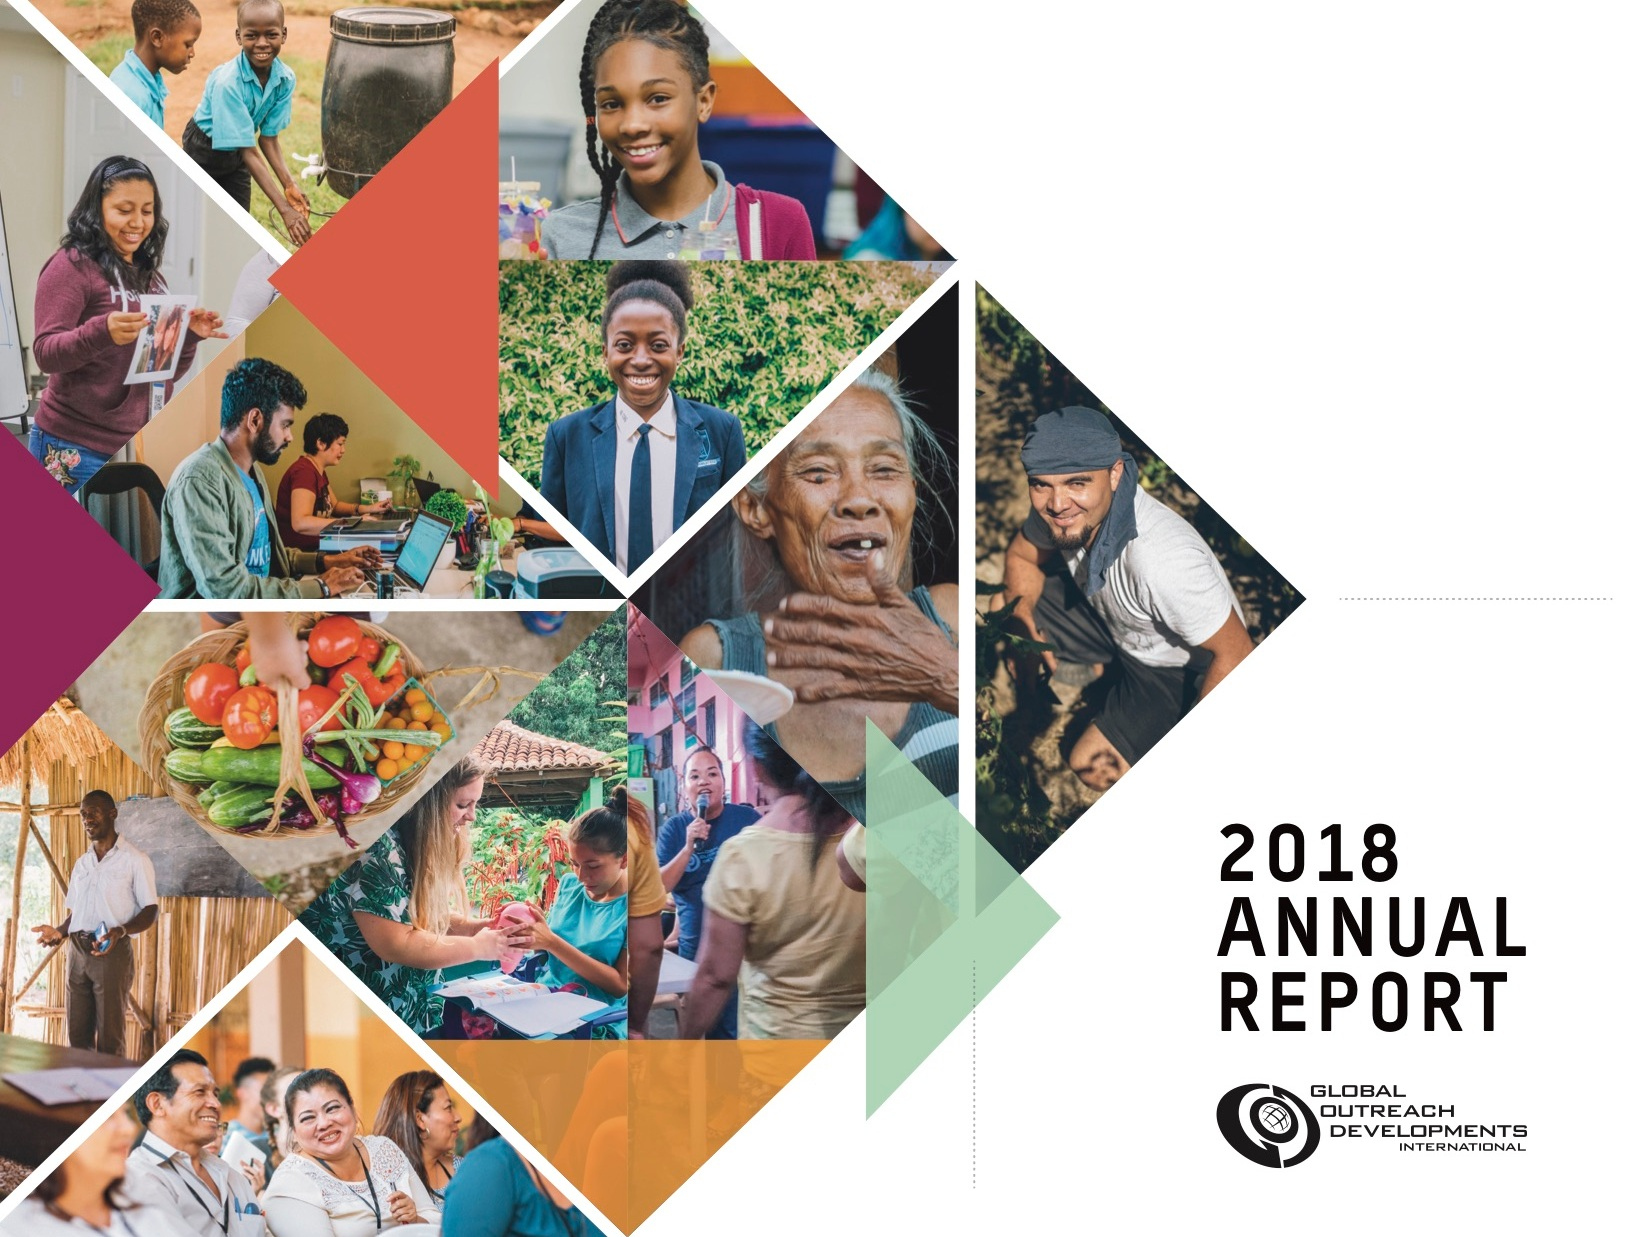 2018 Annual Report - CLICK TO VIEW